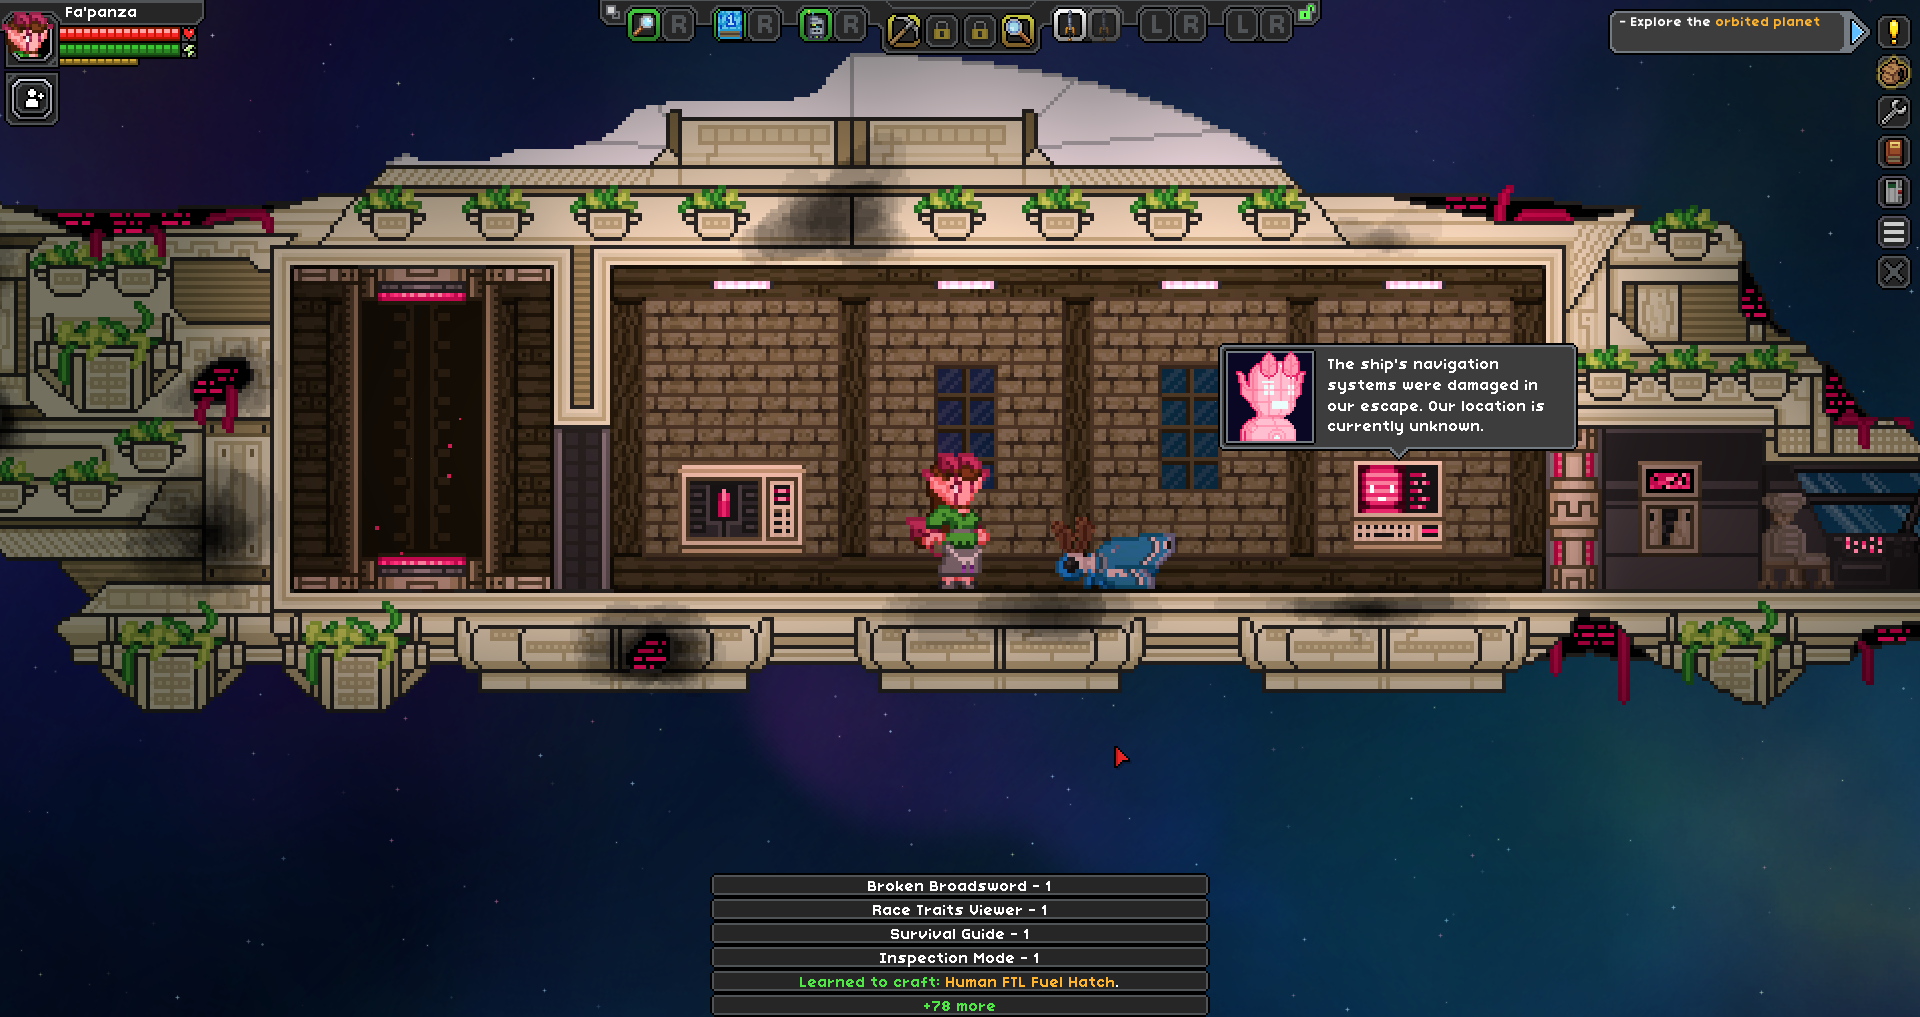 Starbound Race Traits Mod Patch Guide